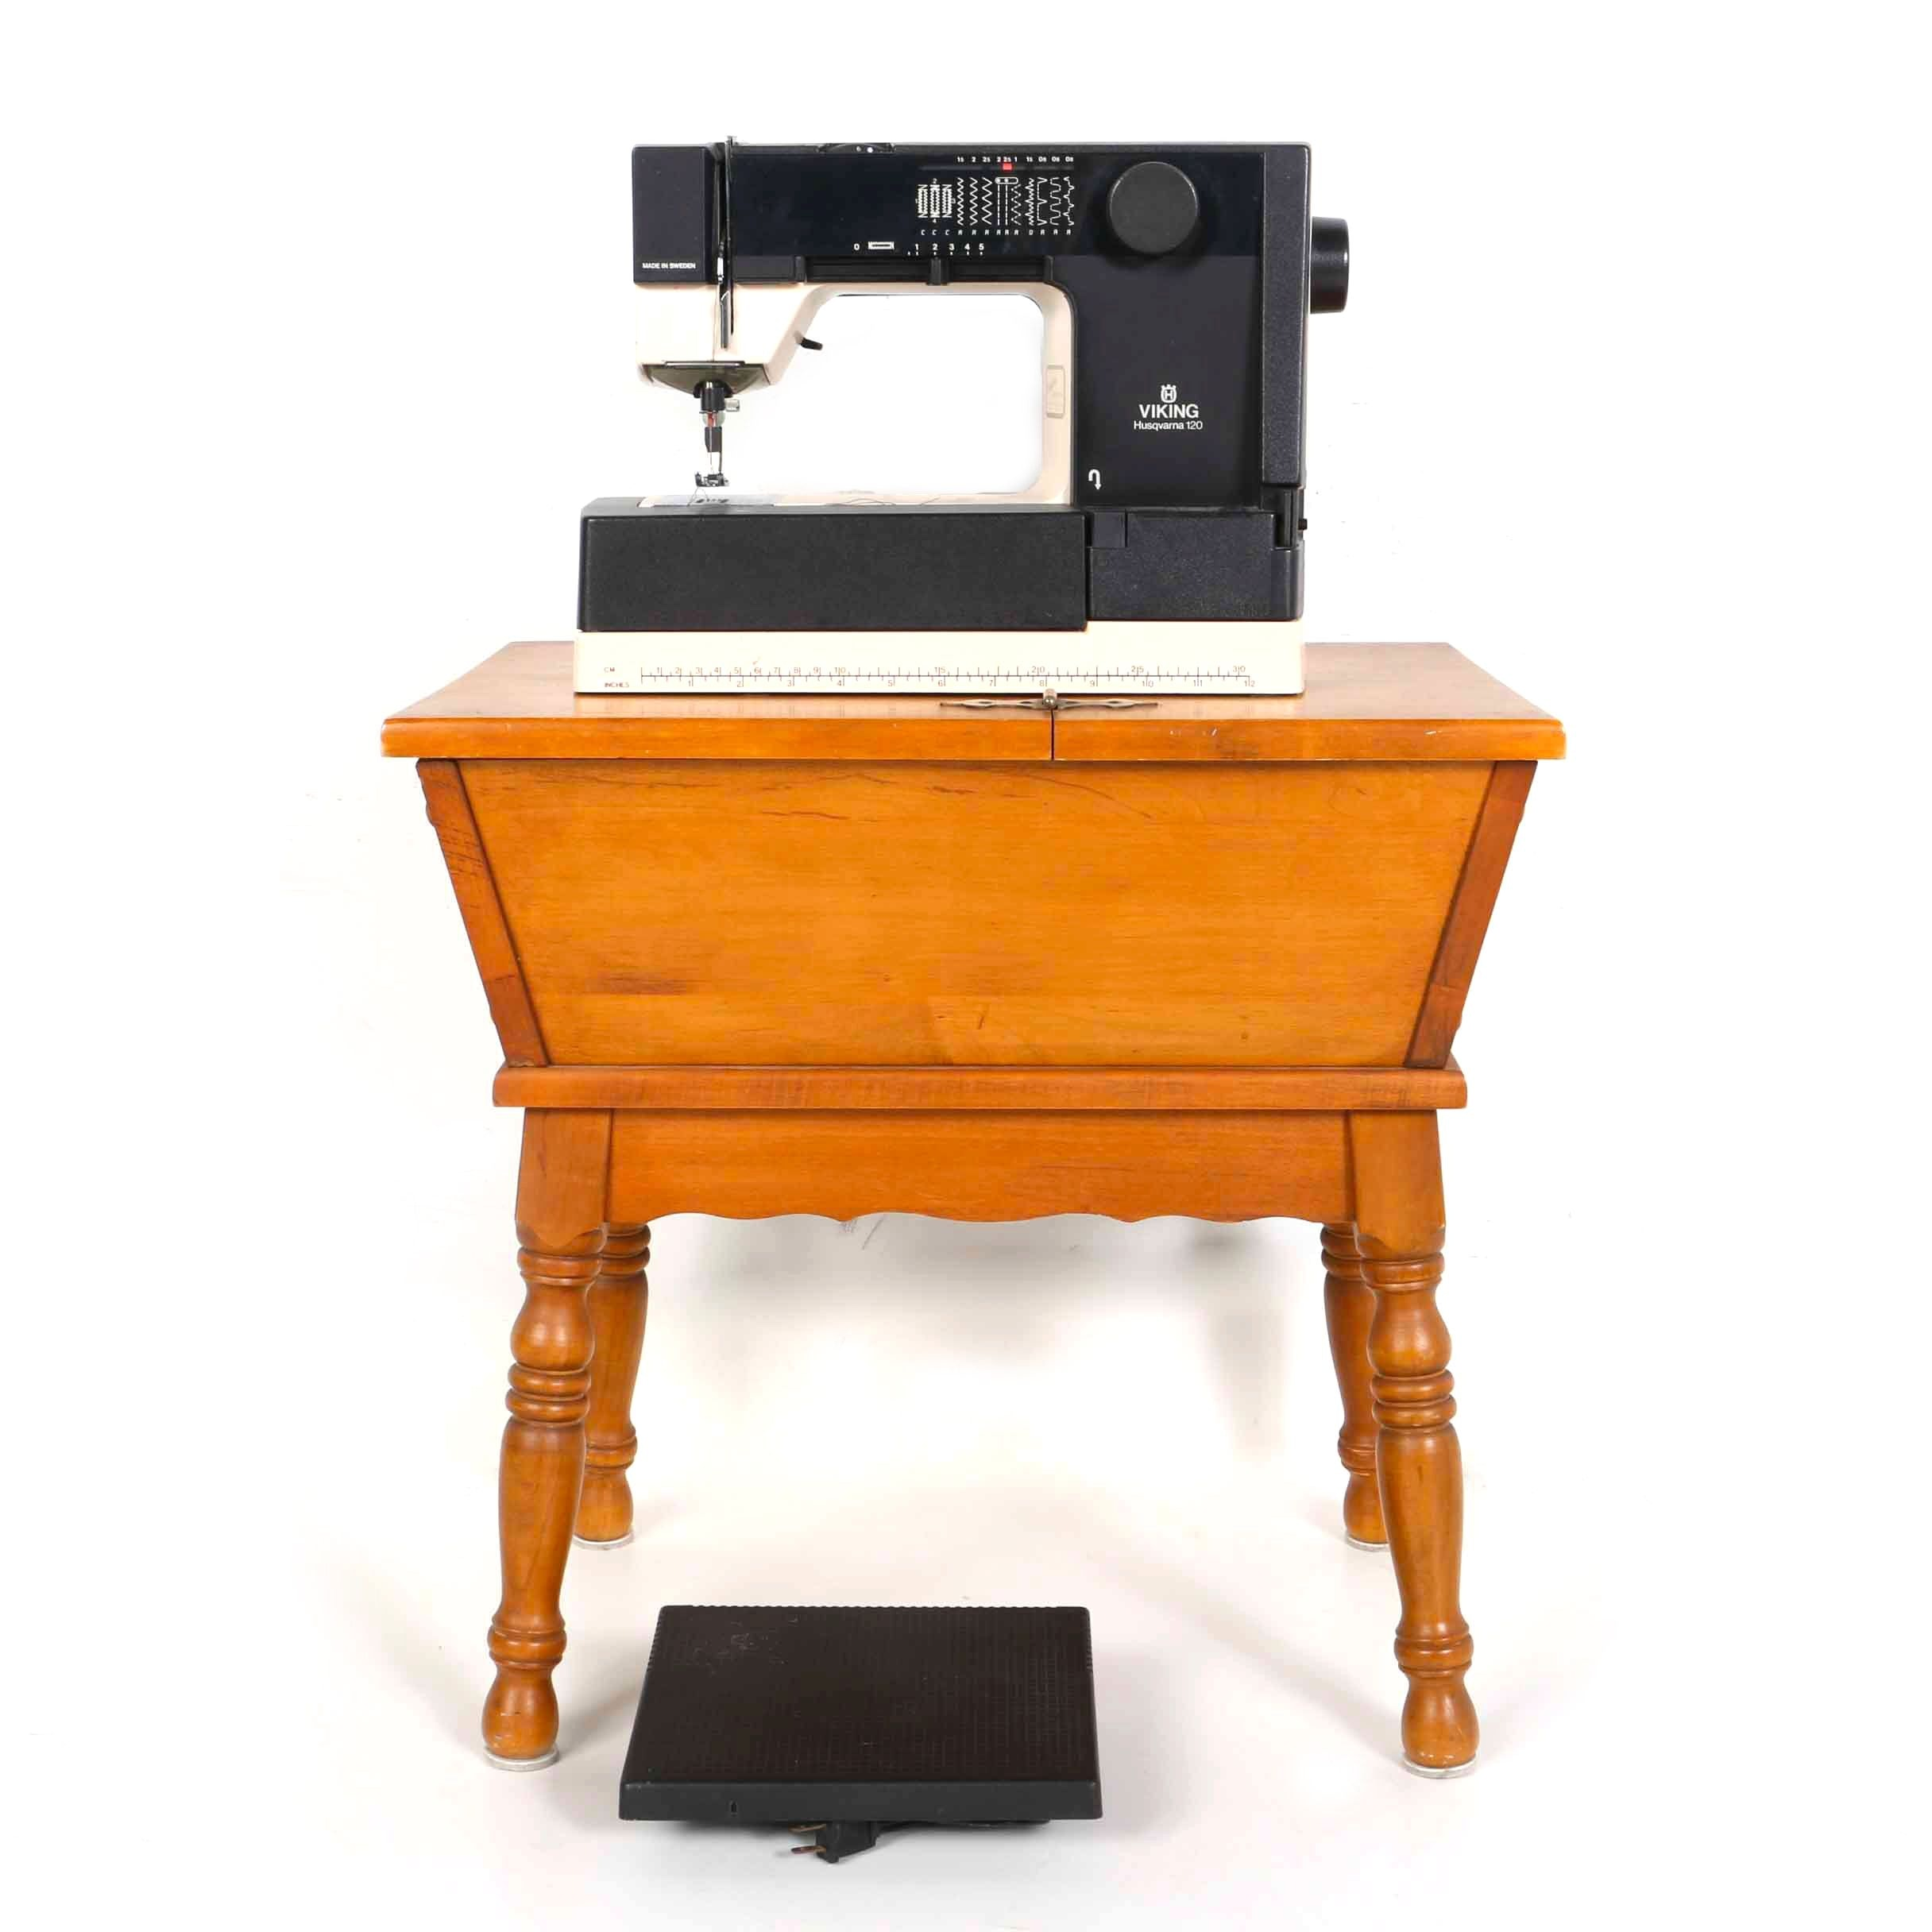 Viking Sewing Machine and Table